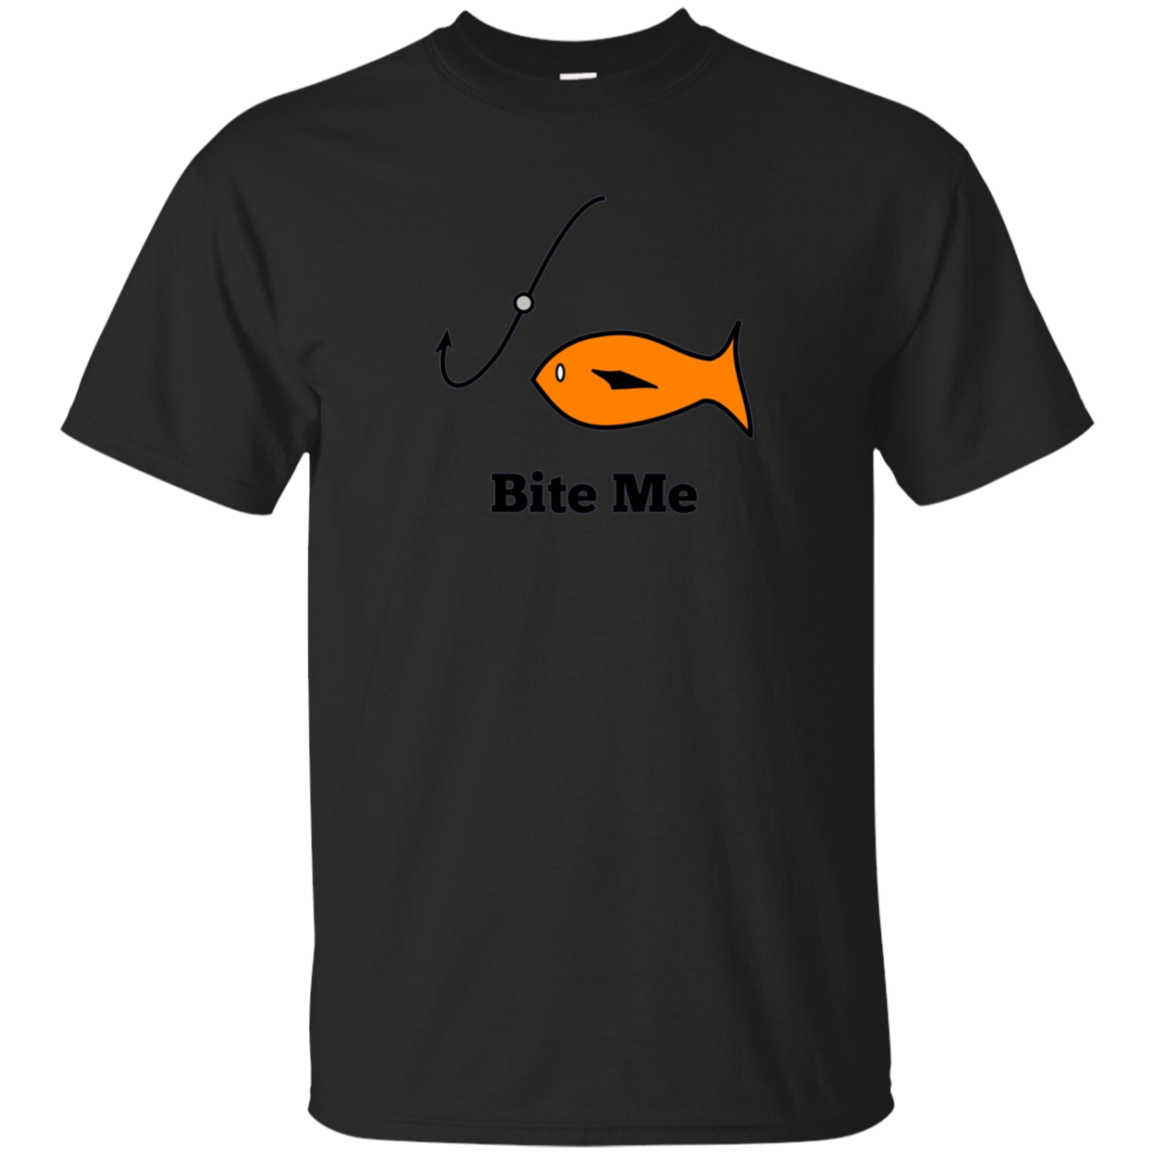 Bite Me Funny Fishing T Shirt for Fisherman and Fish Lovers